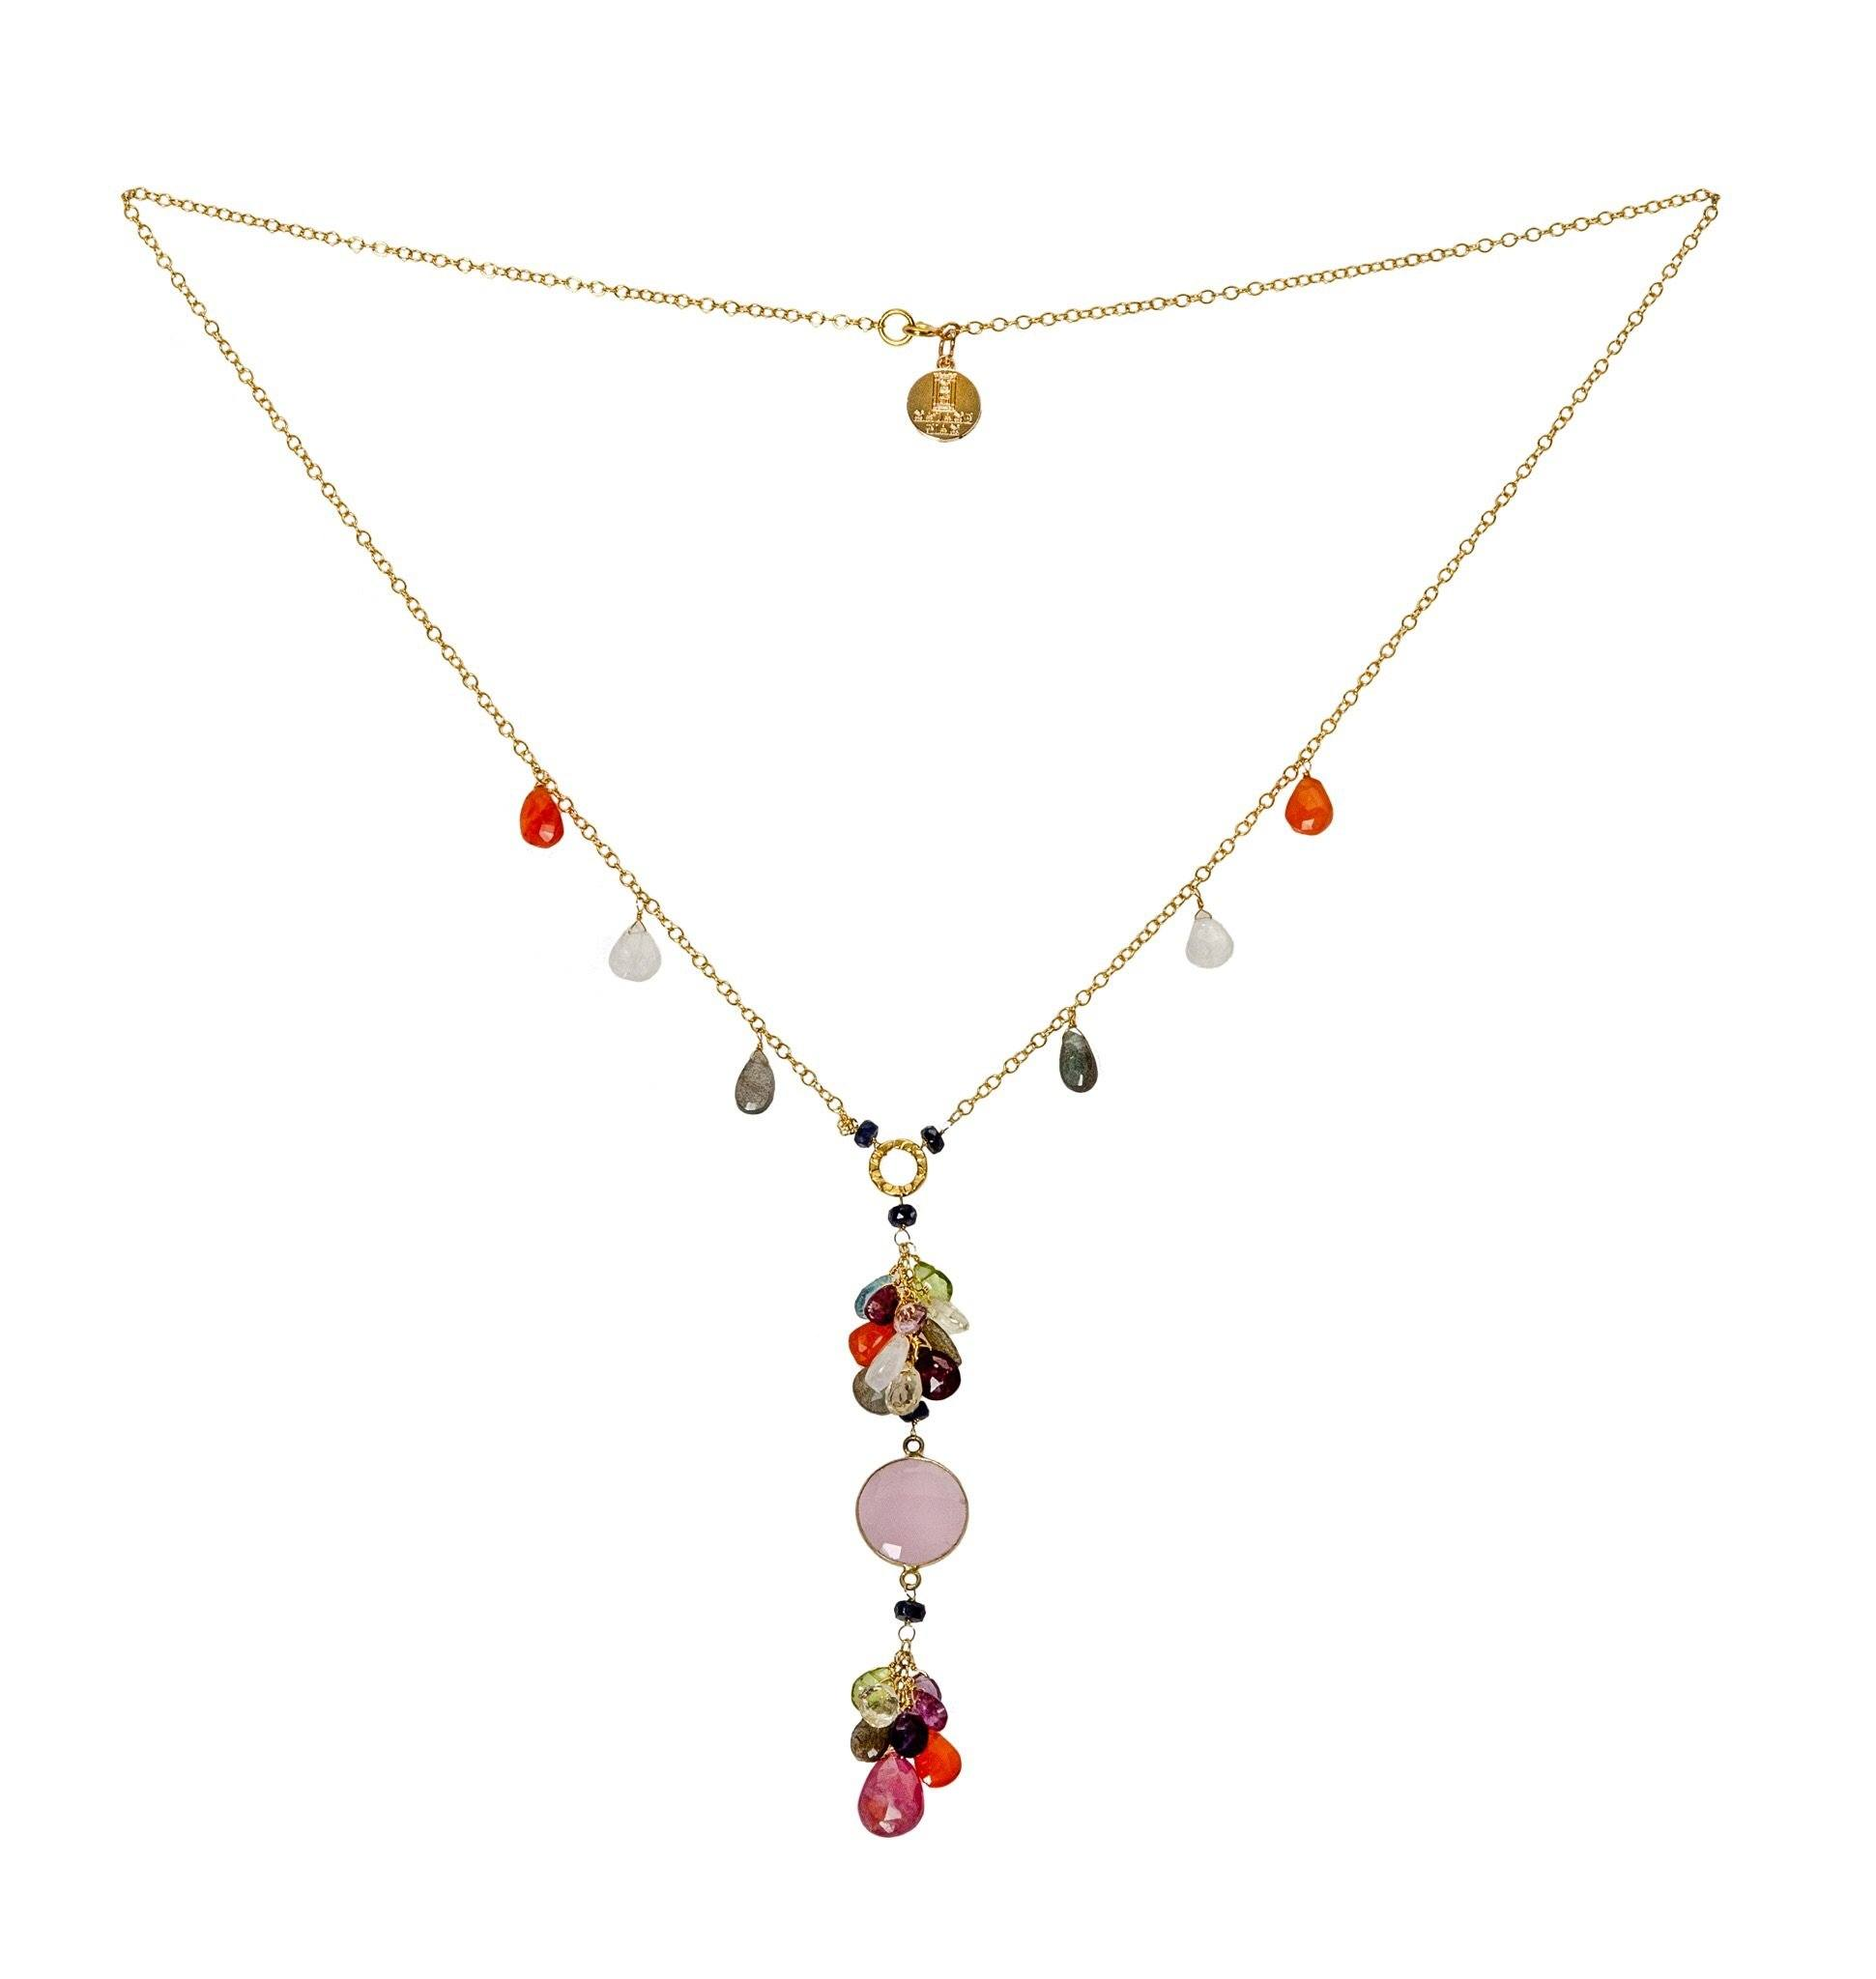 ROSA opal necklace with drops